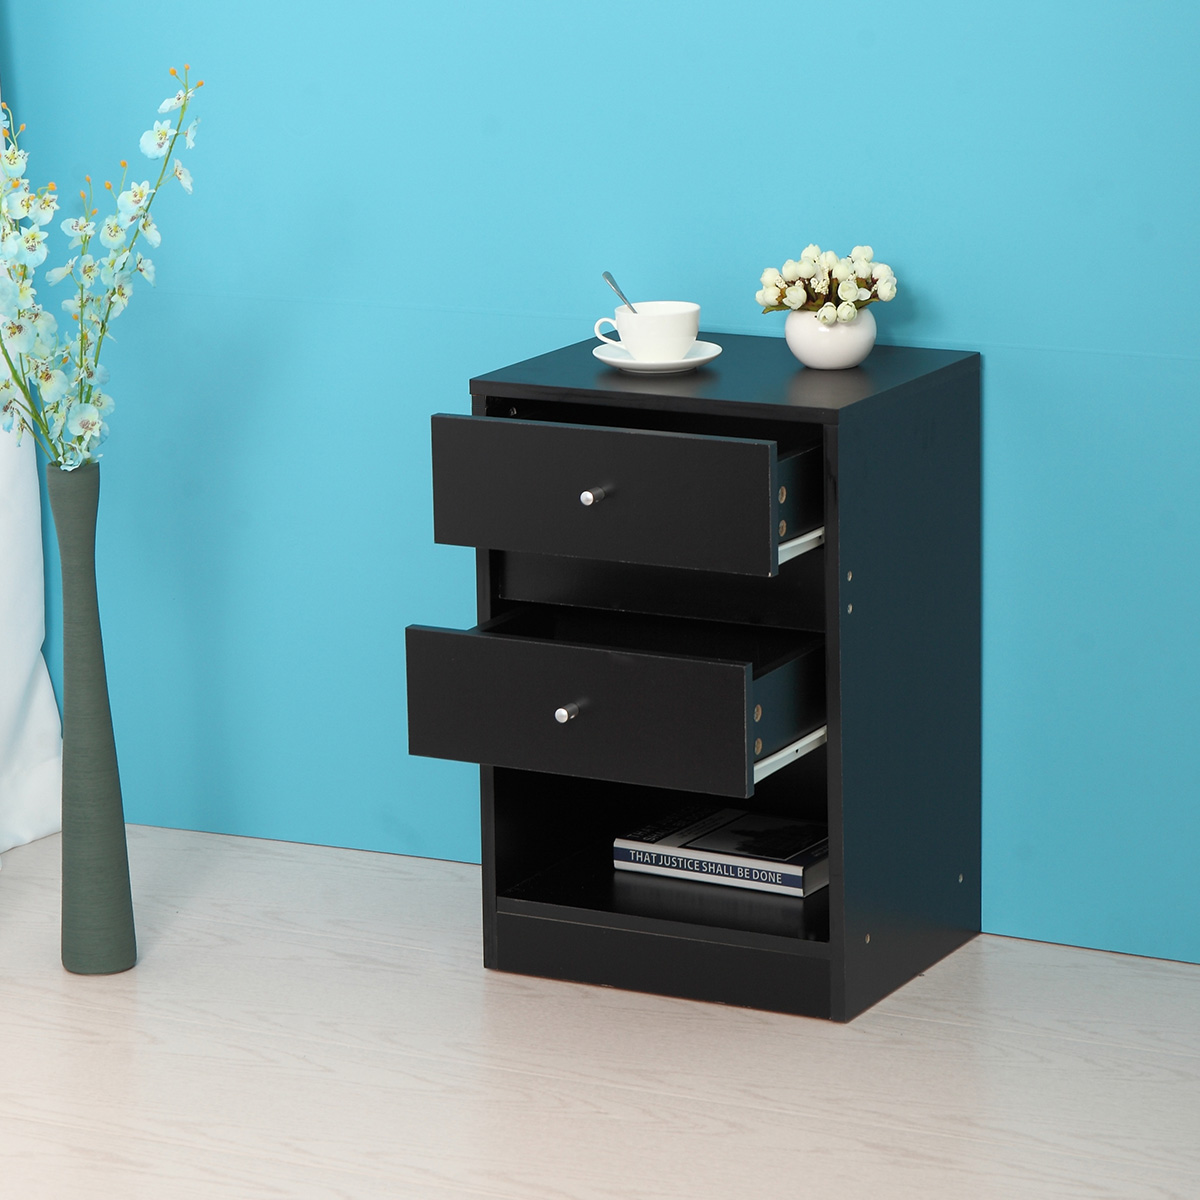 Jaxpety Nightstands End Table Bedroom Furniture Bedside Cabinet  Shelf  2 Drawer Black